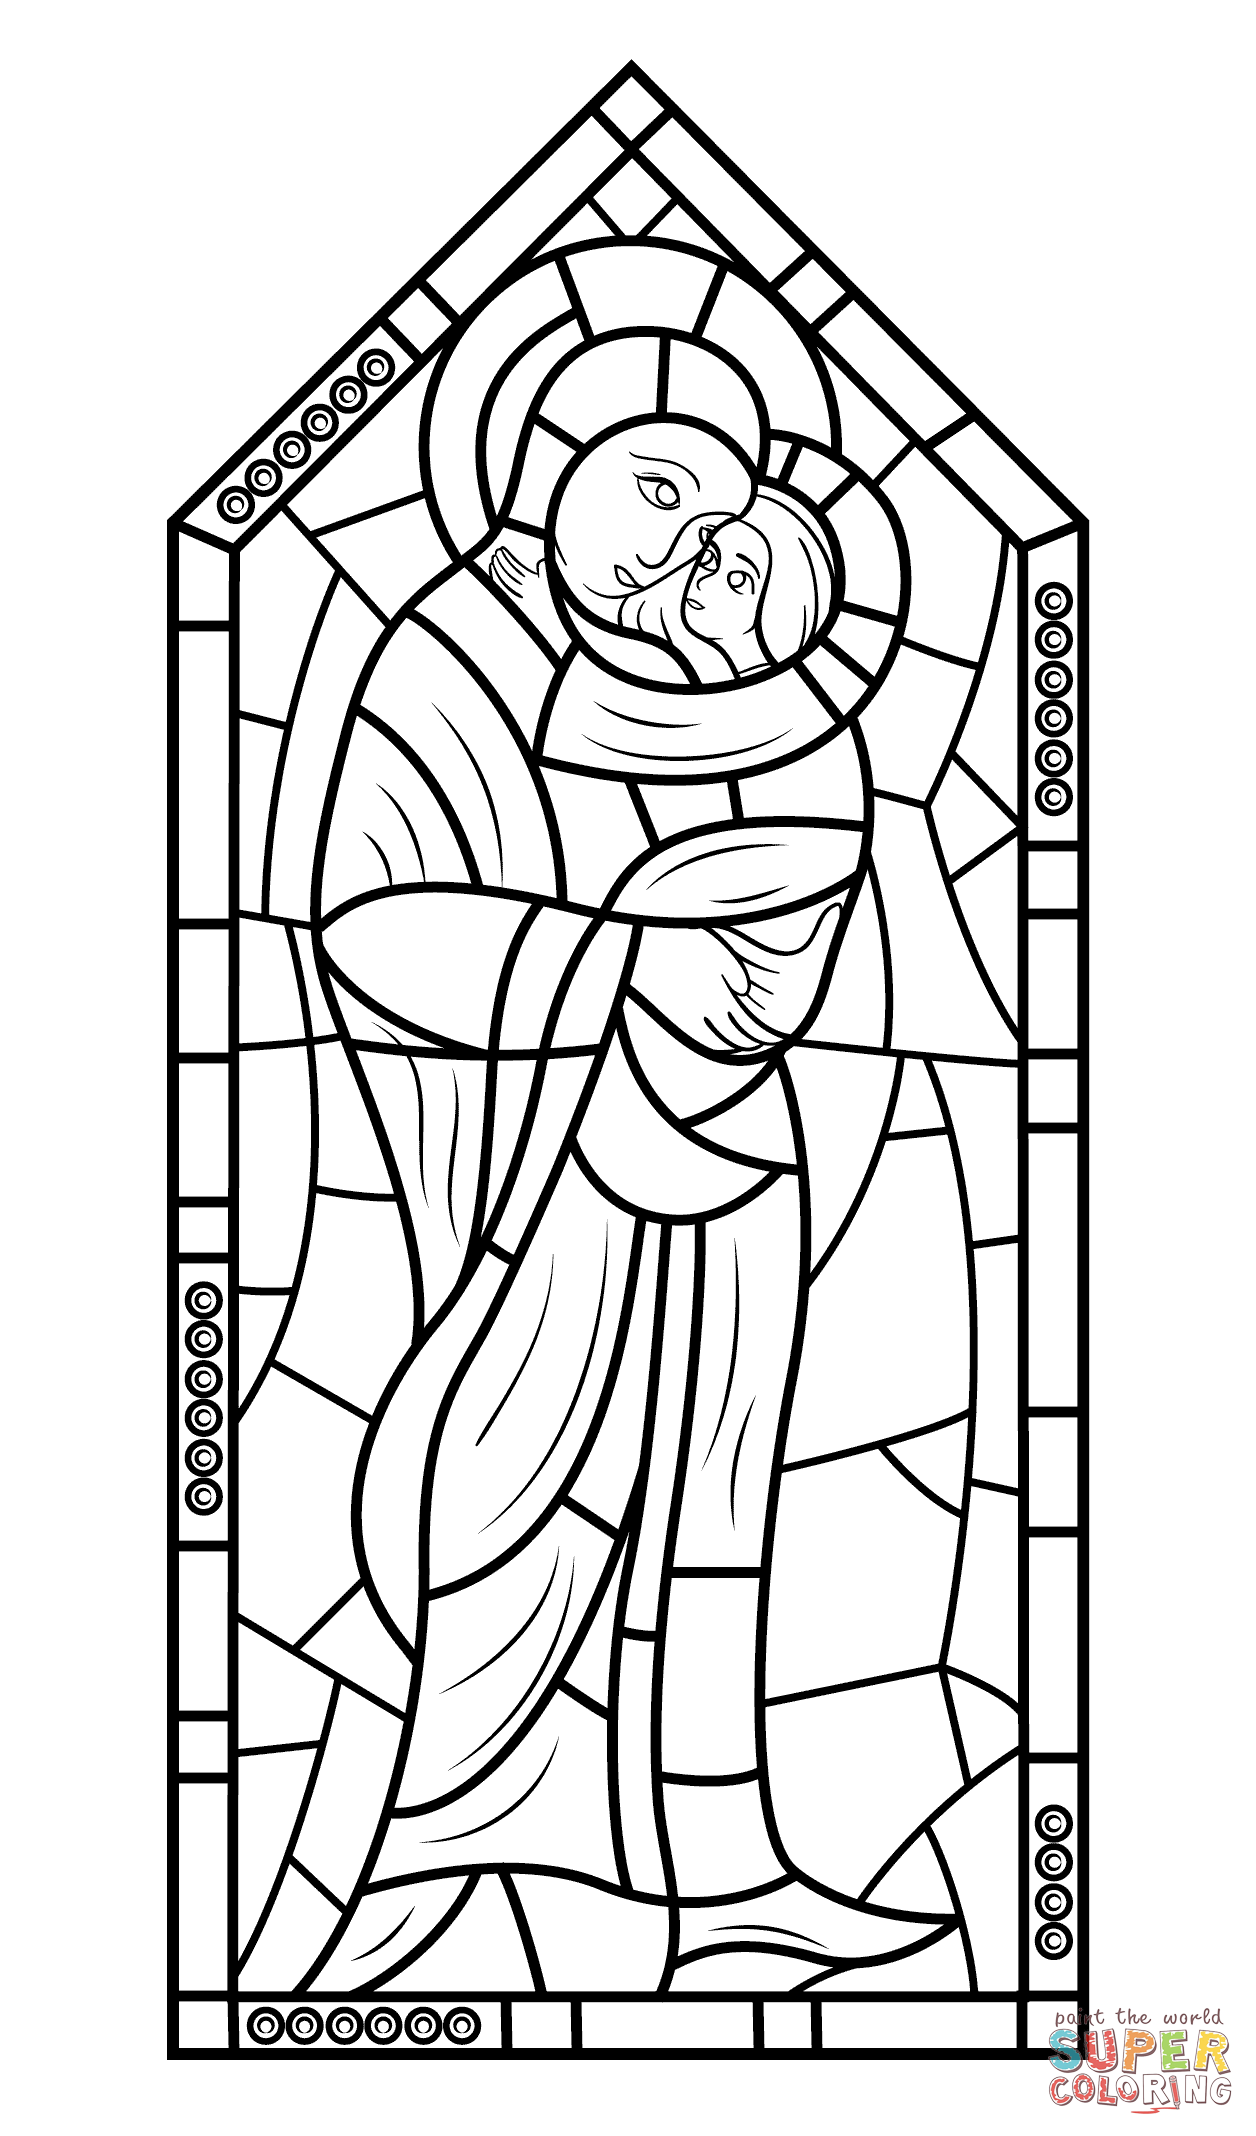 Http Www Supercoloring Com Coloring Pages Mother Mary With Jesus Stained Glass Version Print Stained Glass Patterns Free Sea Glass Art Diy Coloring Pages